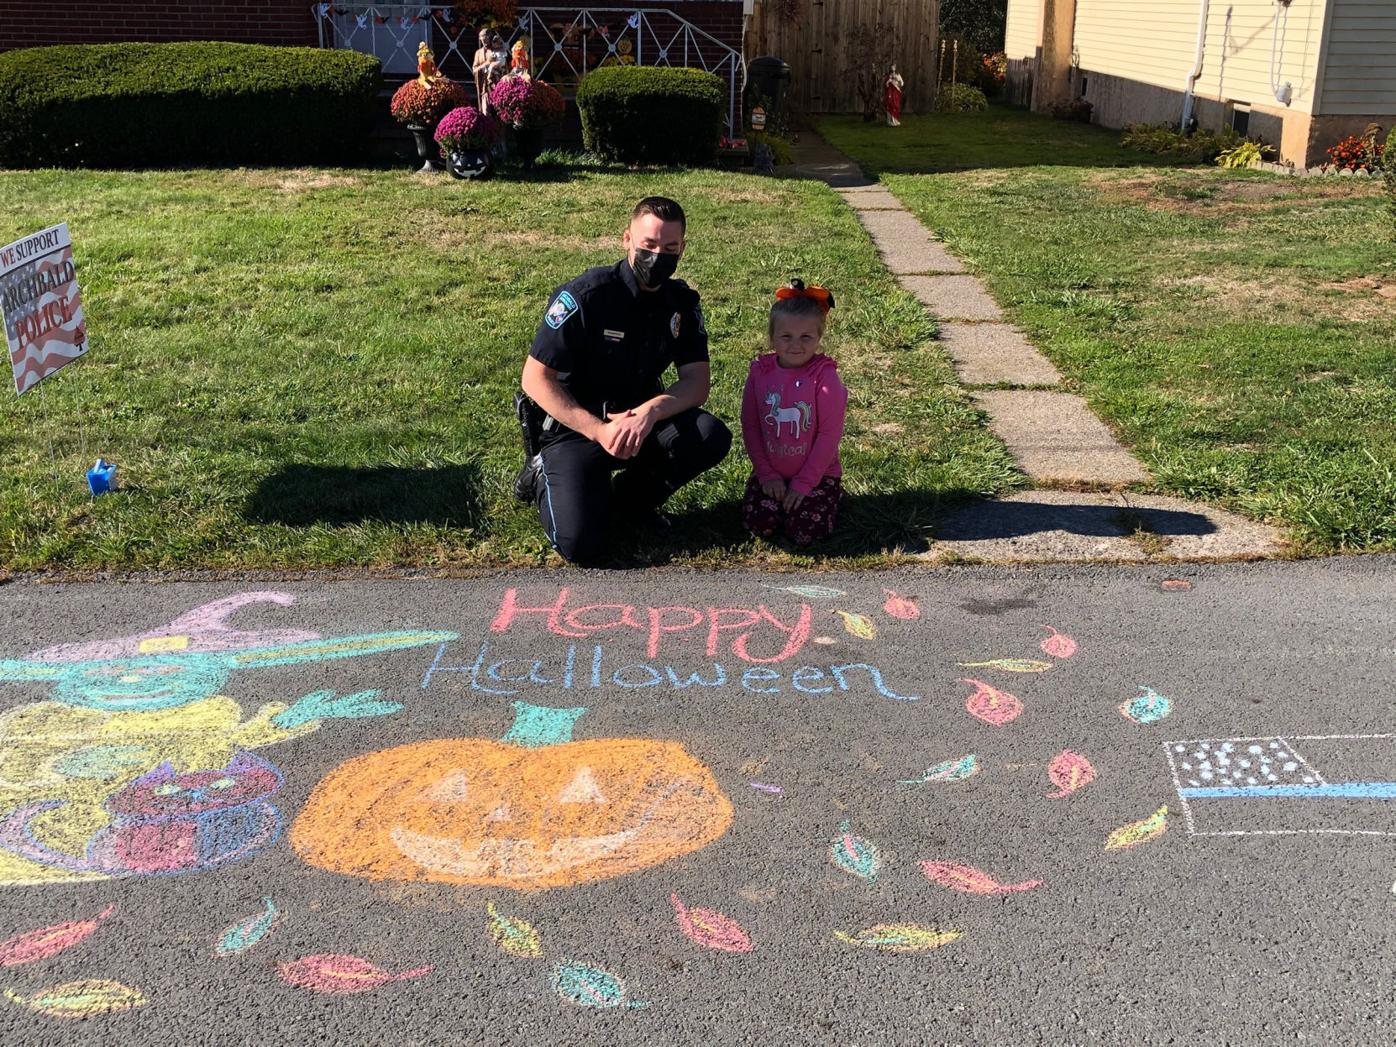 Chalk contest brings out Archbald's creative side